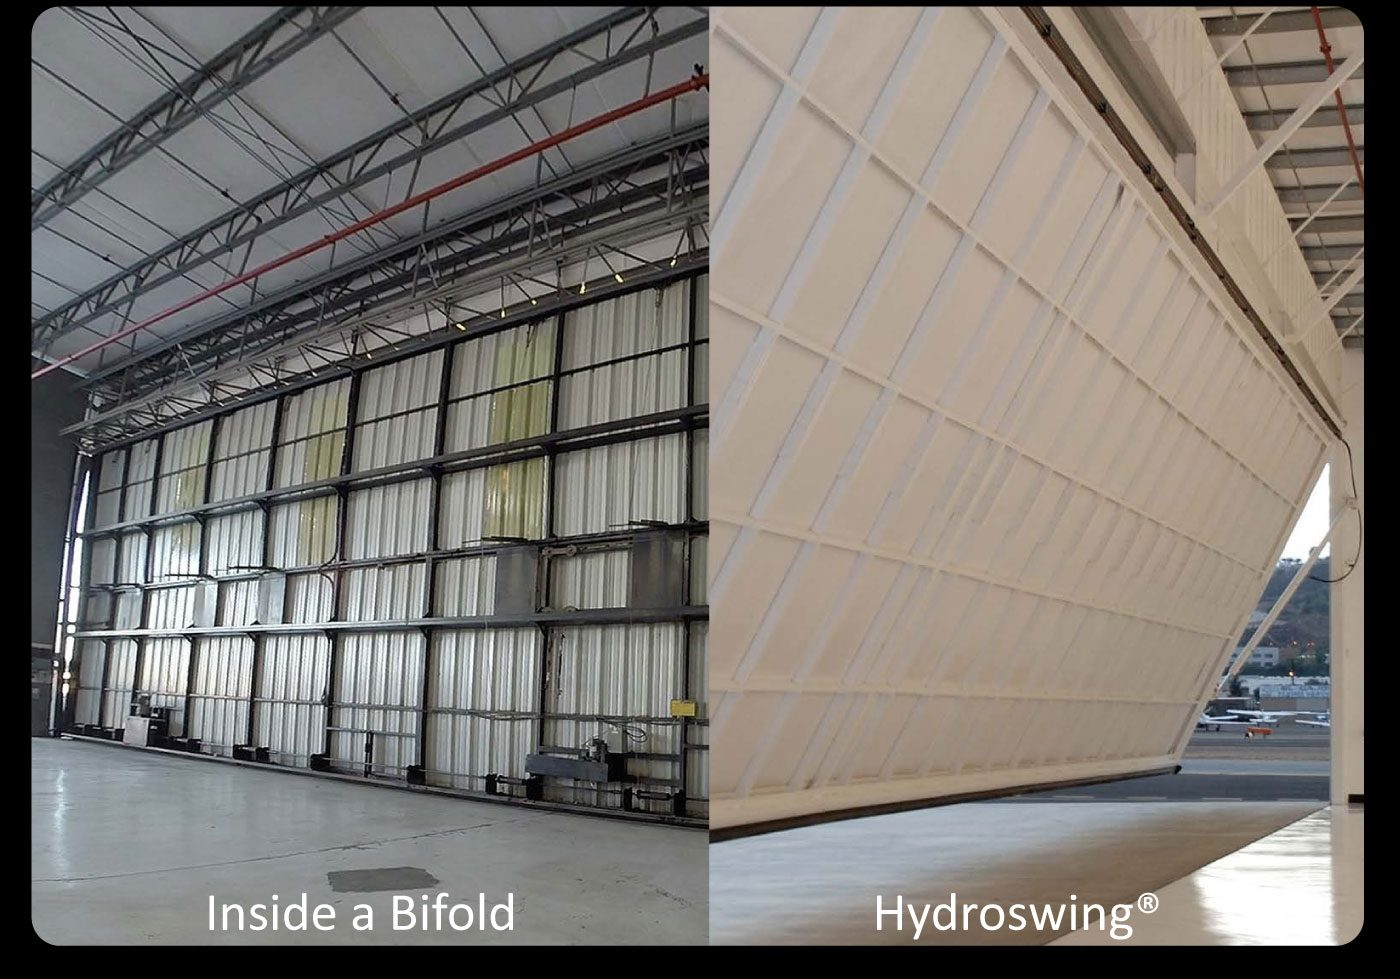 inside bifold door compared to the inside of a hydroswing hydraulic door.jpg